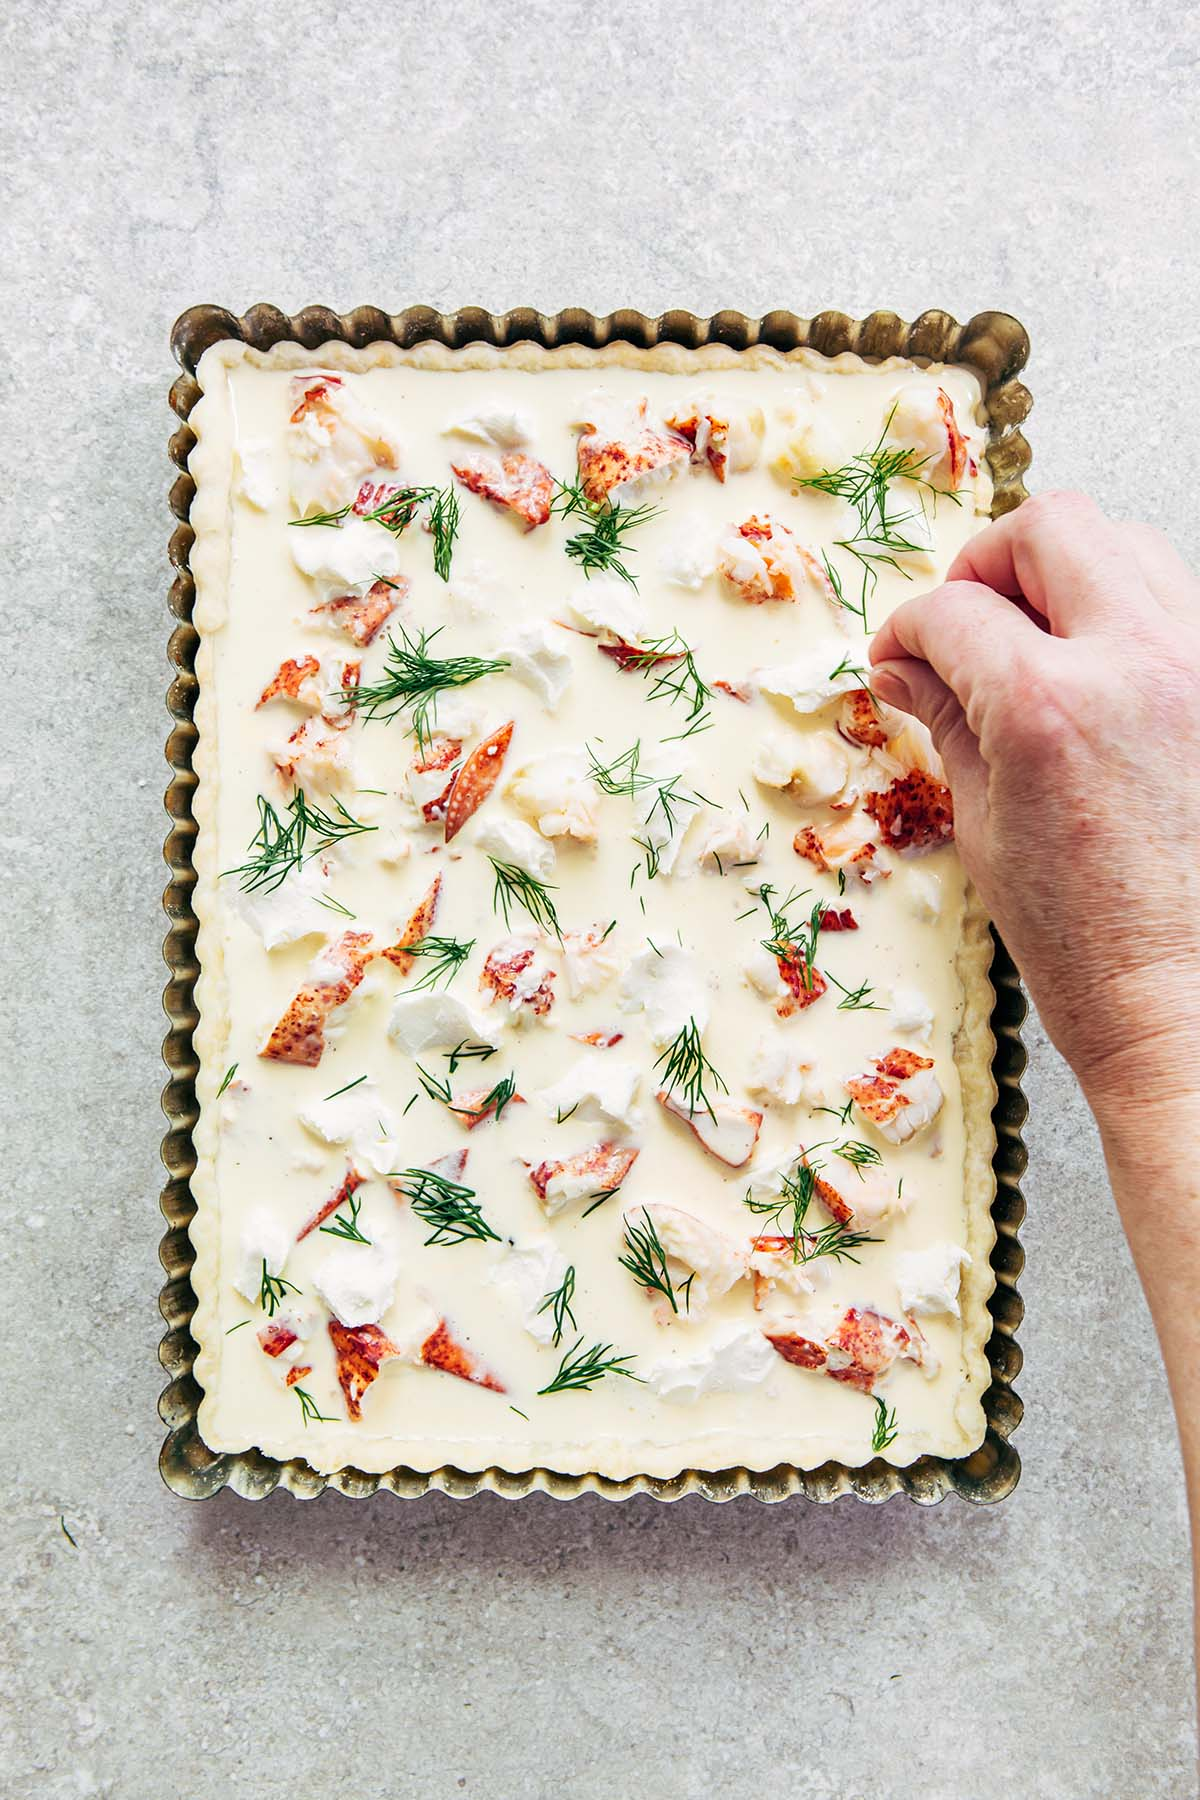 A woman's hand sprinkling pieces of fresh dill over an unbaked quiche in a rectangle metal tart tin on a stone surface.